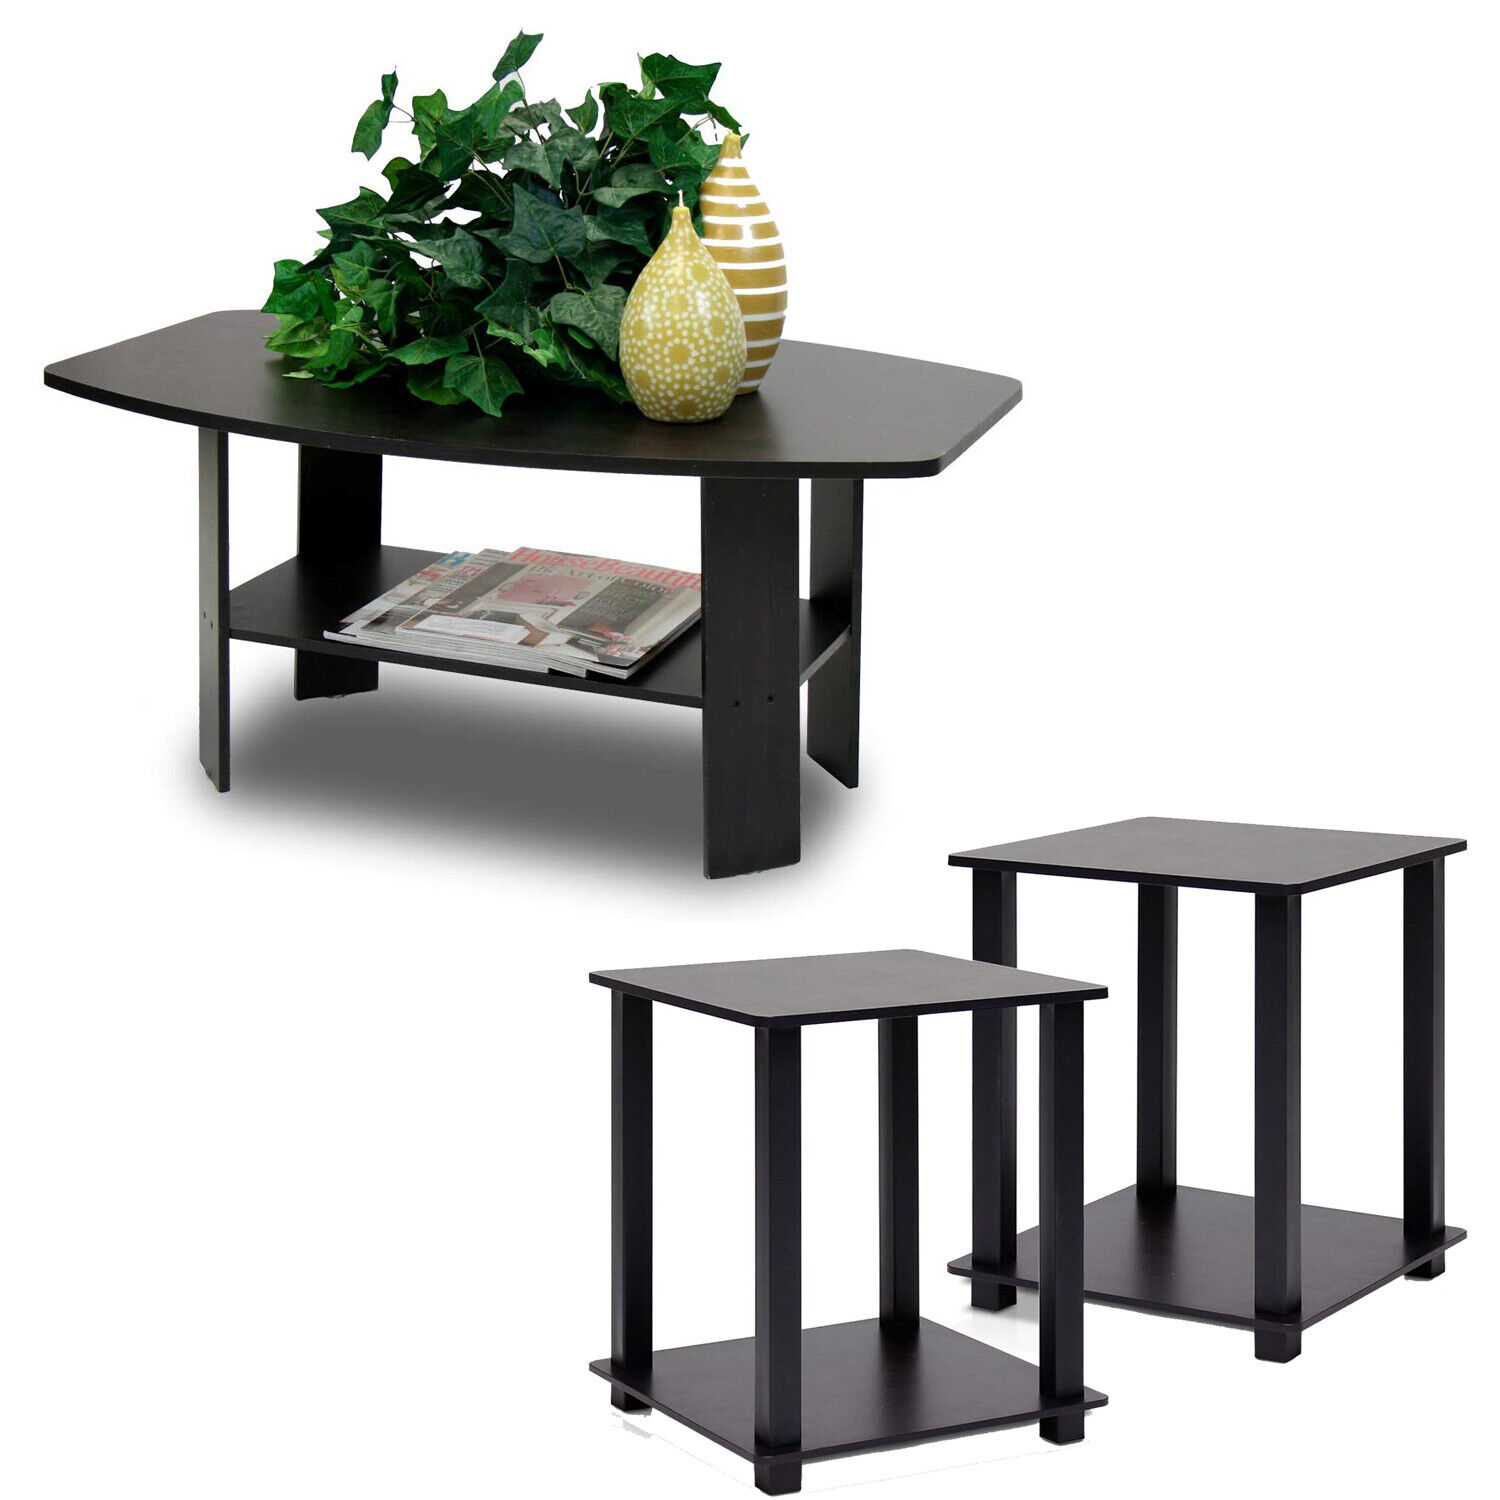 Coffee Table And 2 End Tables Side 3 Piece Set Modern Furniture Living Room Wood For Sale Online